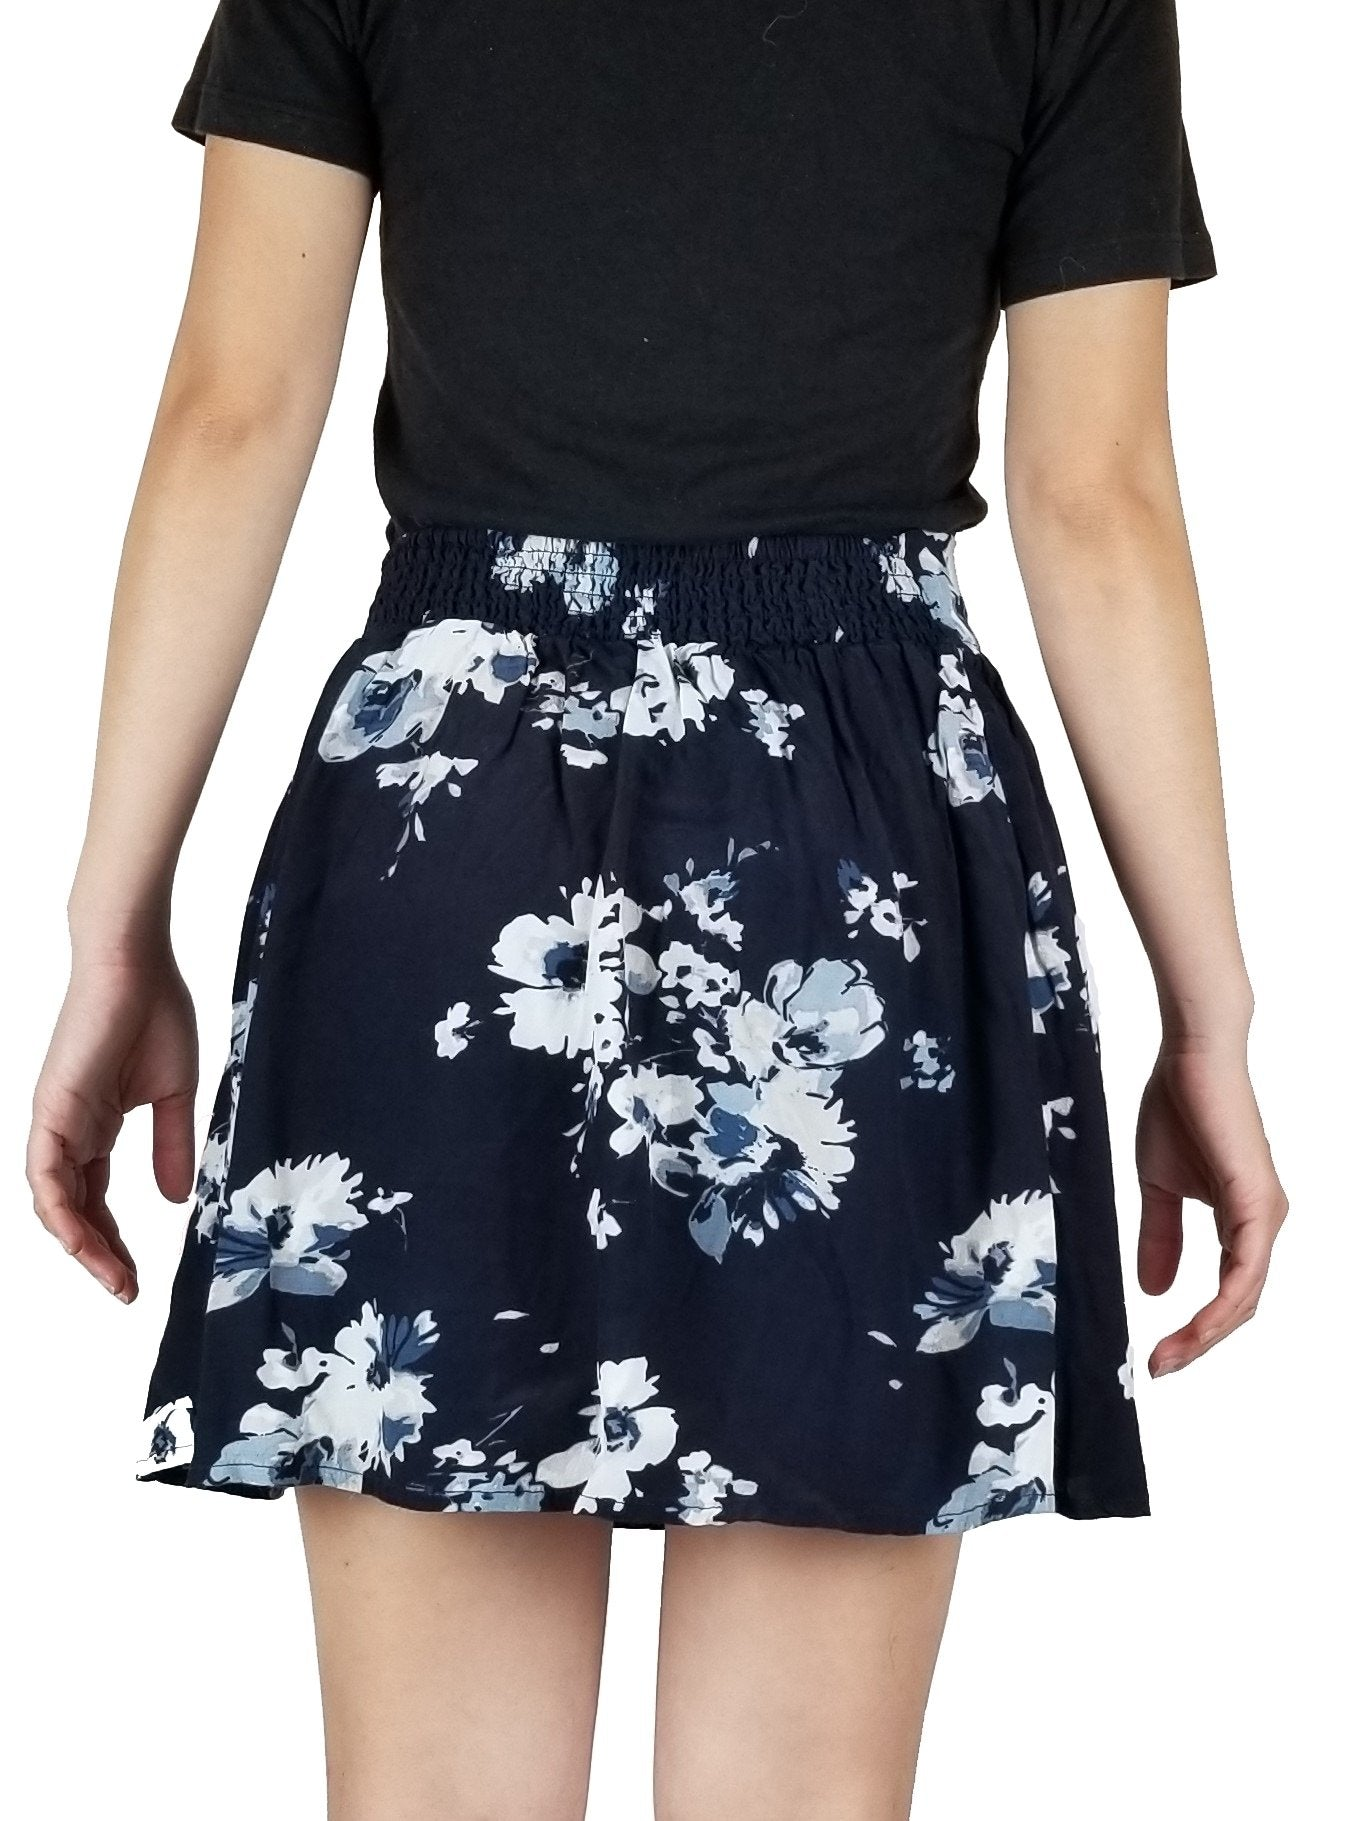 Garage Flower skirt, Summer skirt, Blue, 58% Viscose, 42% Rayon, mini floral skirt, blue and white floral mini skirt, skirt